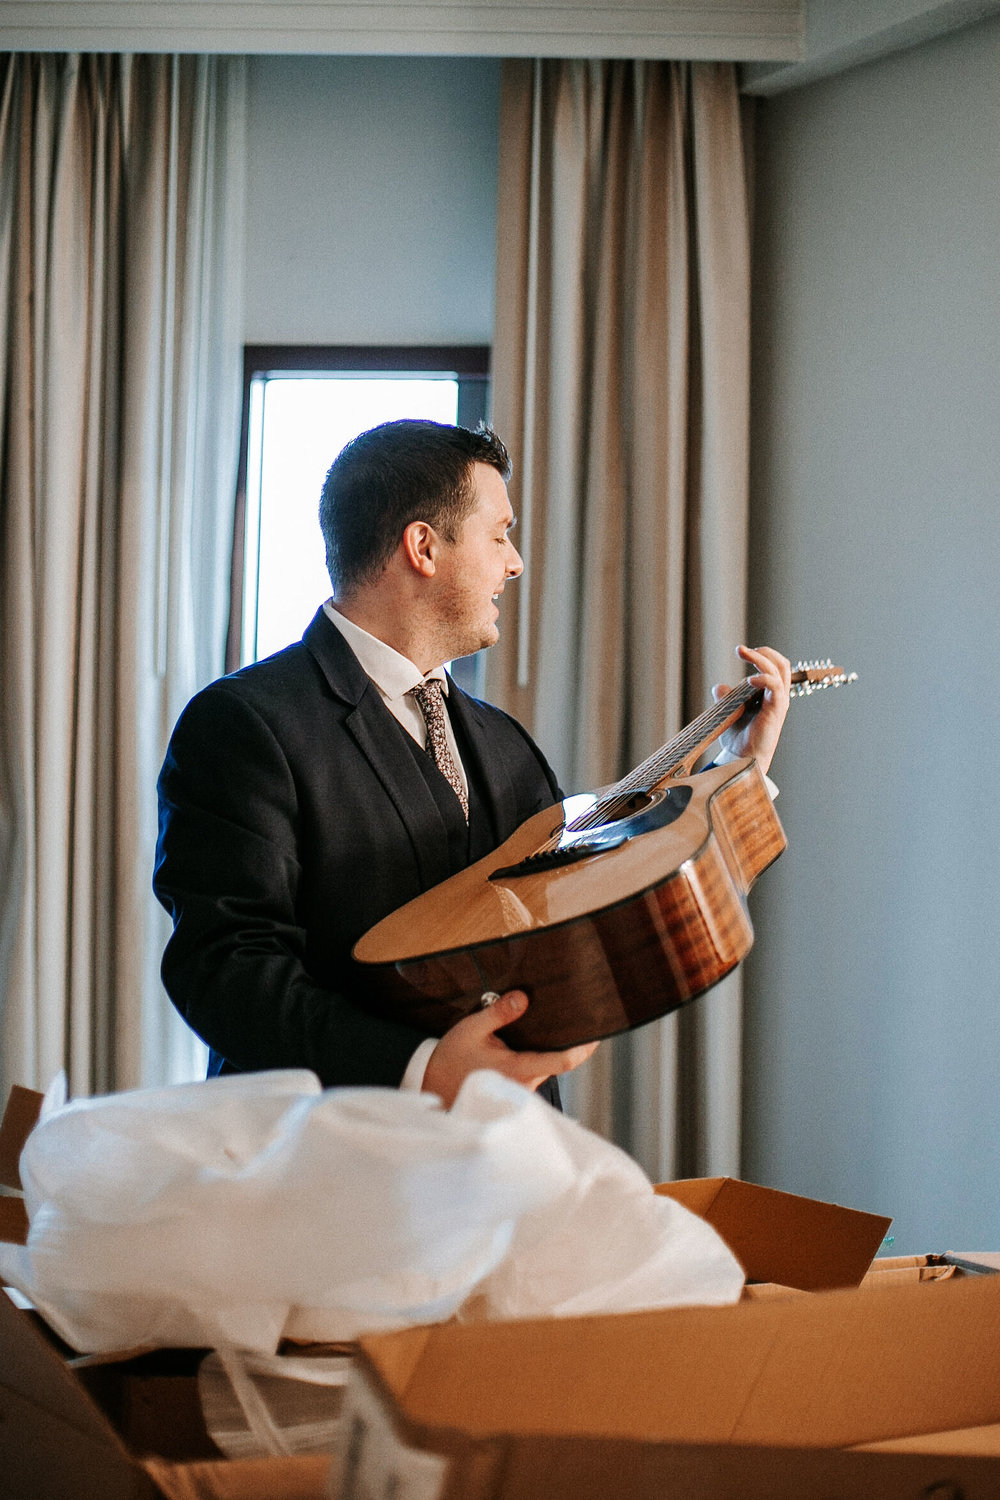 groom opening present from bride The George Washington Masonic National Memorial